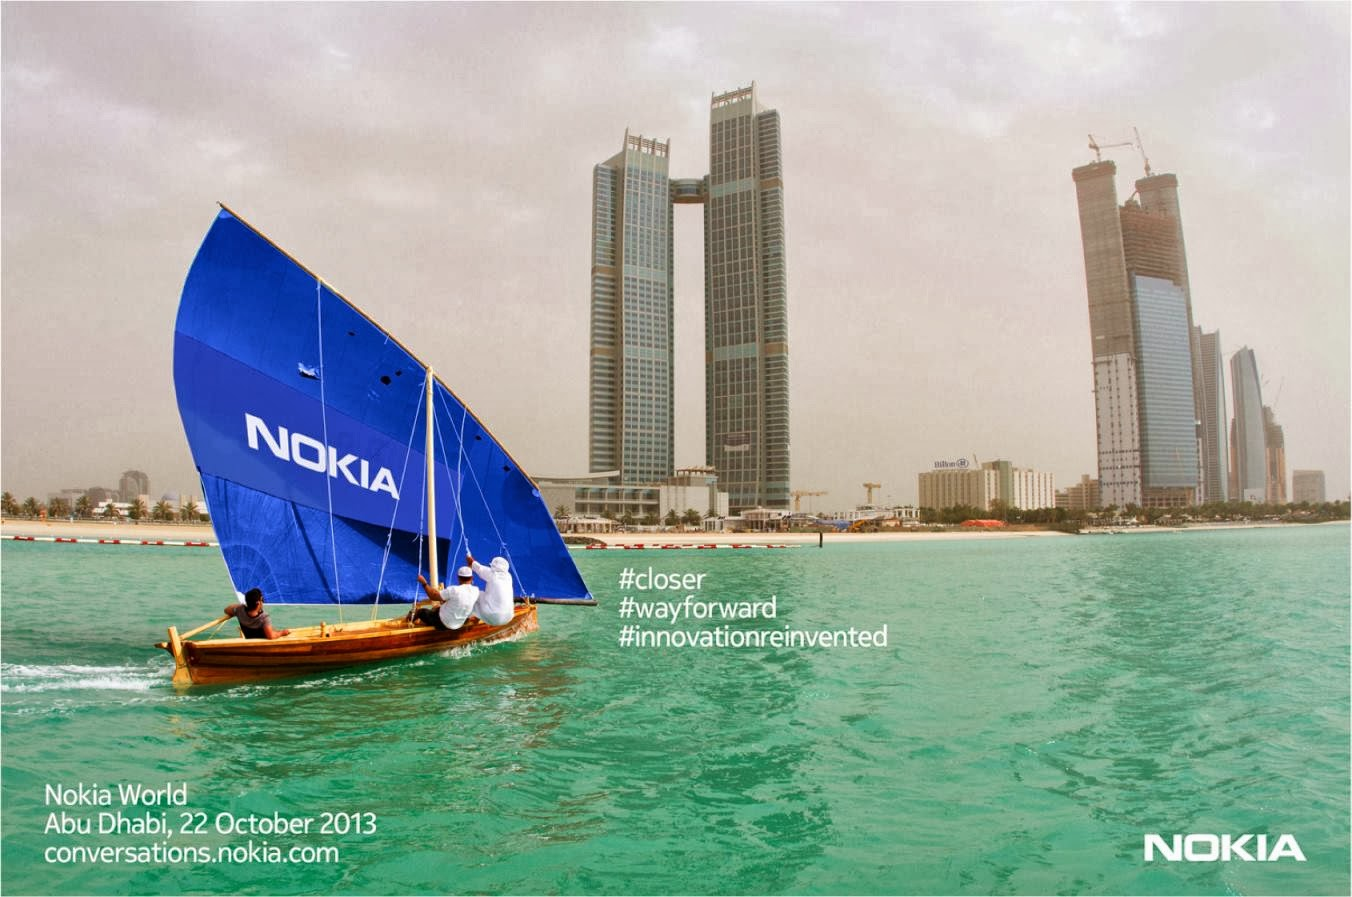 Nokia World 2013 Abu Dhabi